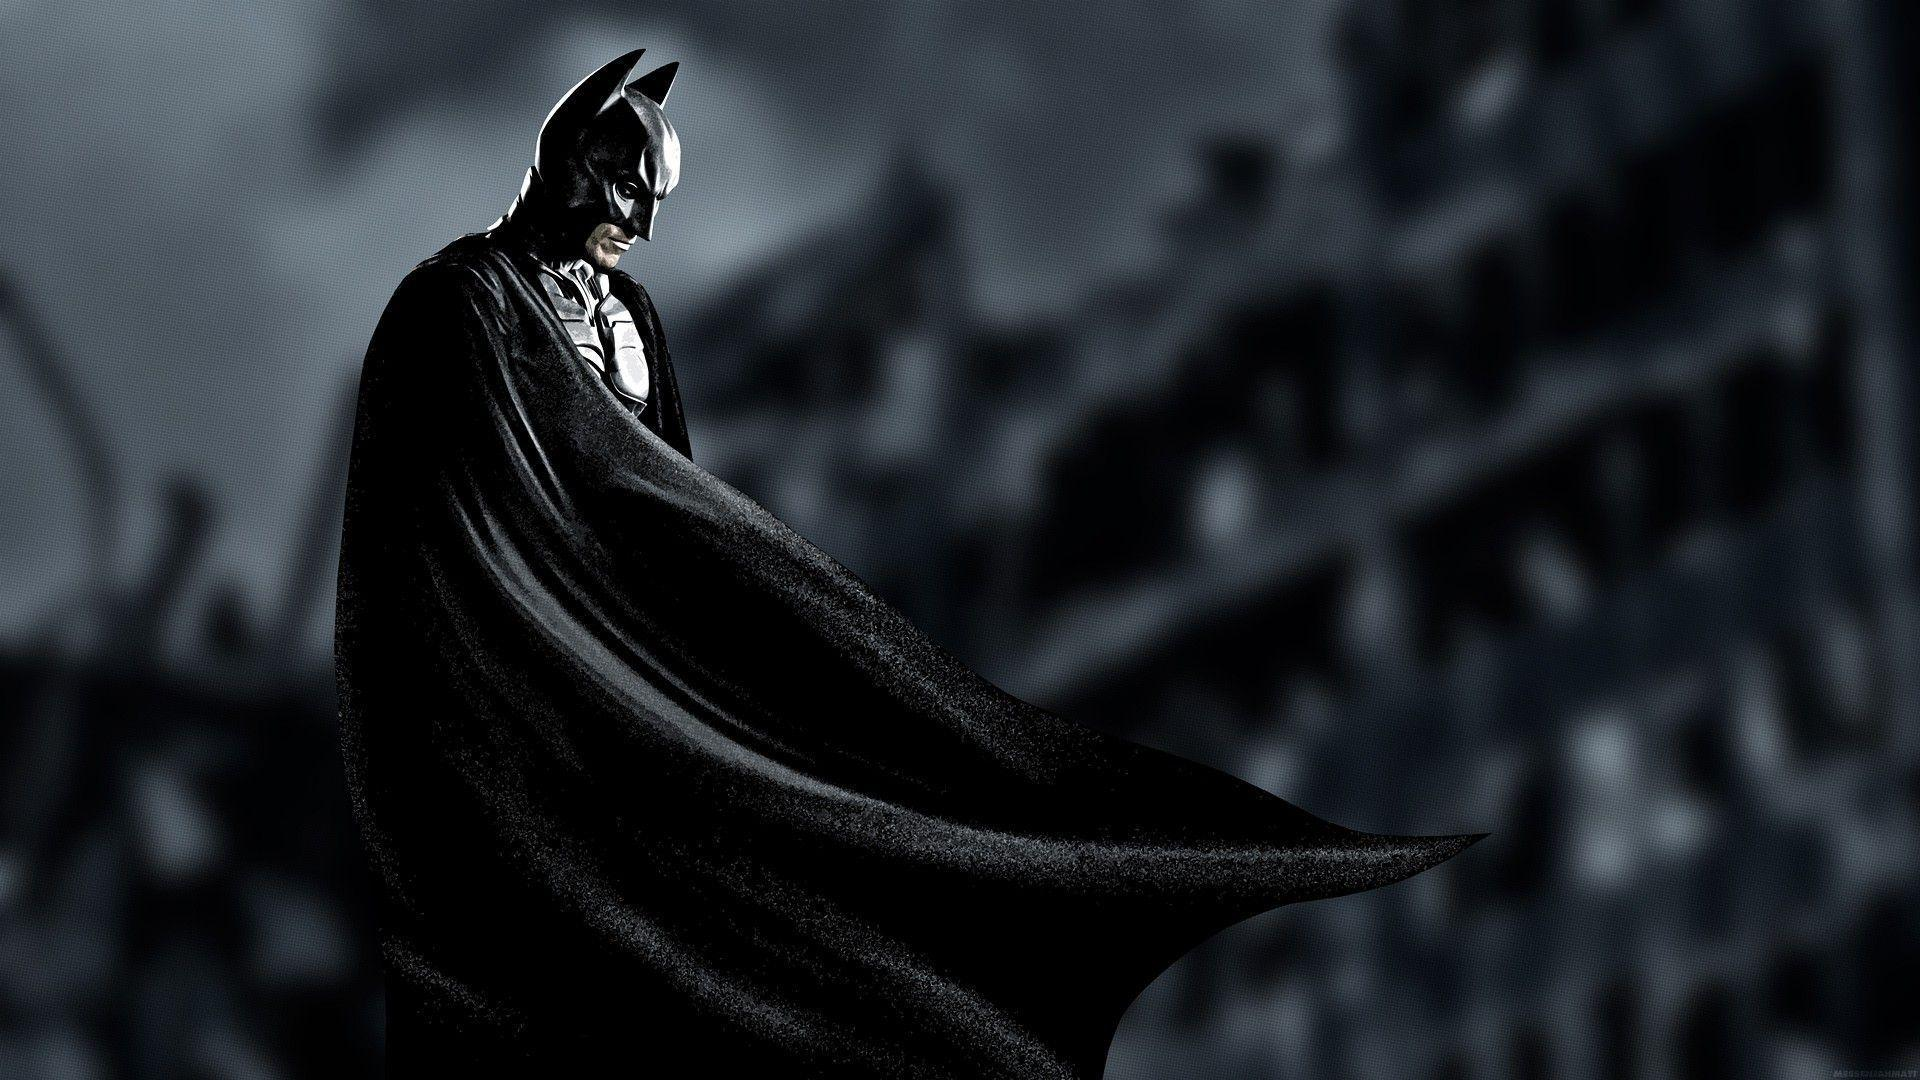 Batman Wallpapers 1080p Download Movie HD Batman Wallpapers